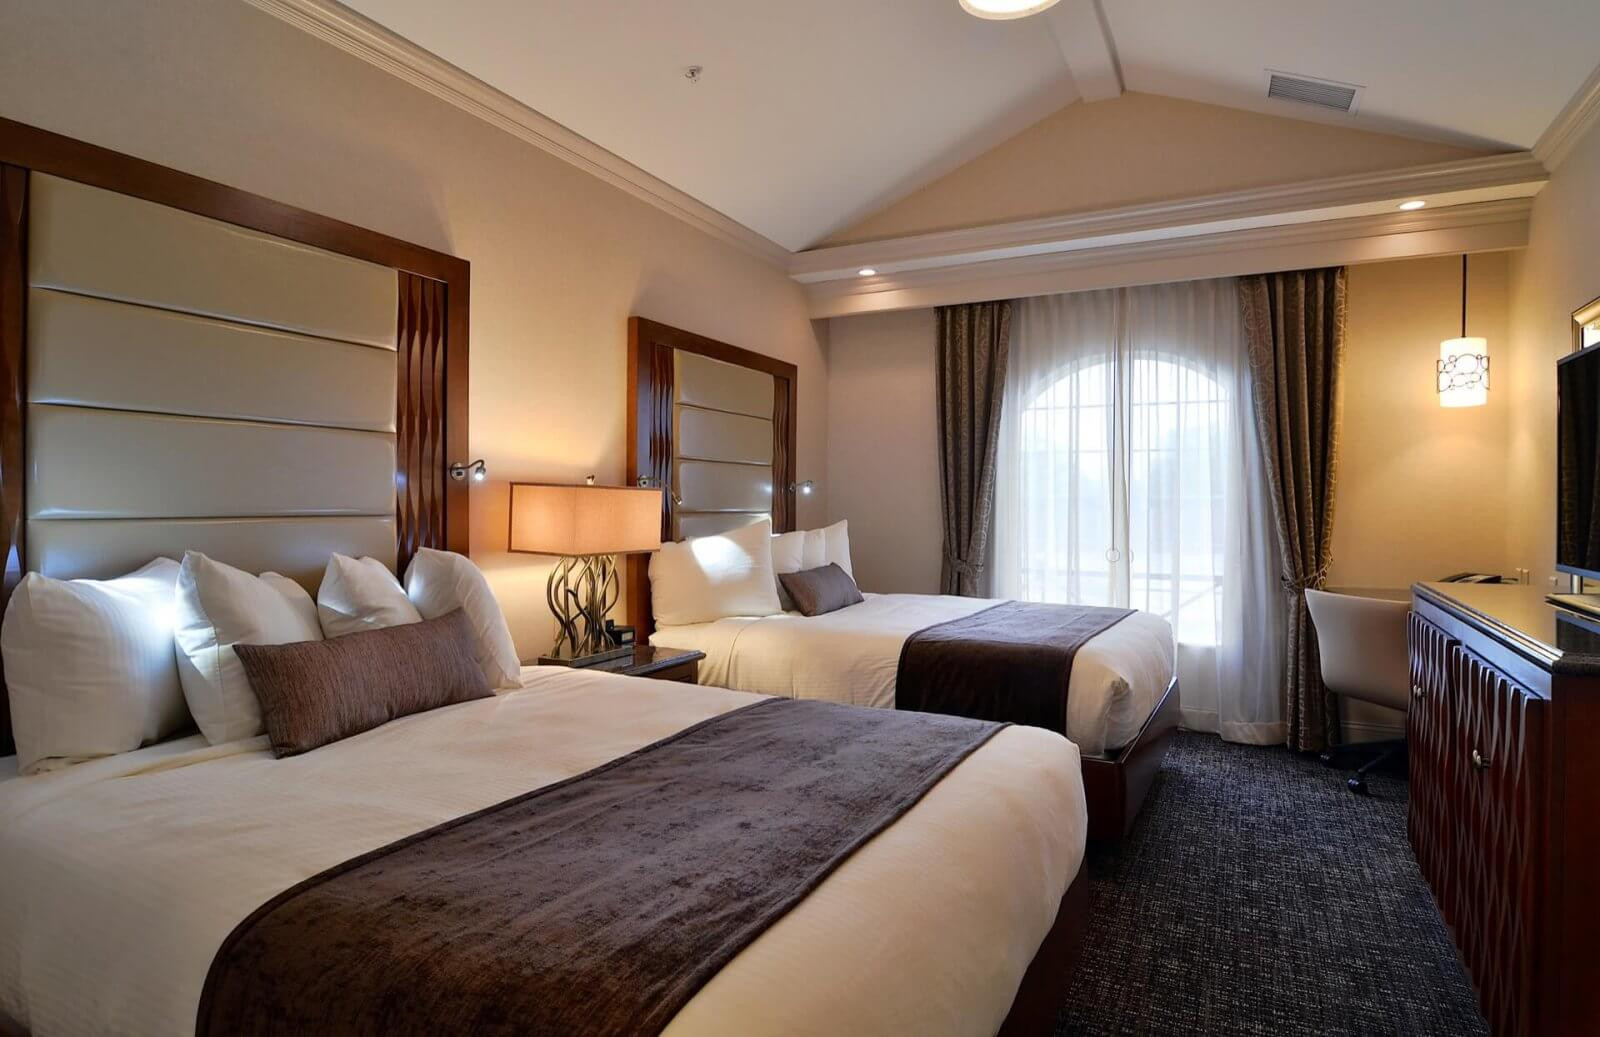 Best ideas about Hotels With Two Bedroom Suites . Save or Pin Hotel Suites in Lancaster PA Now.